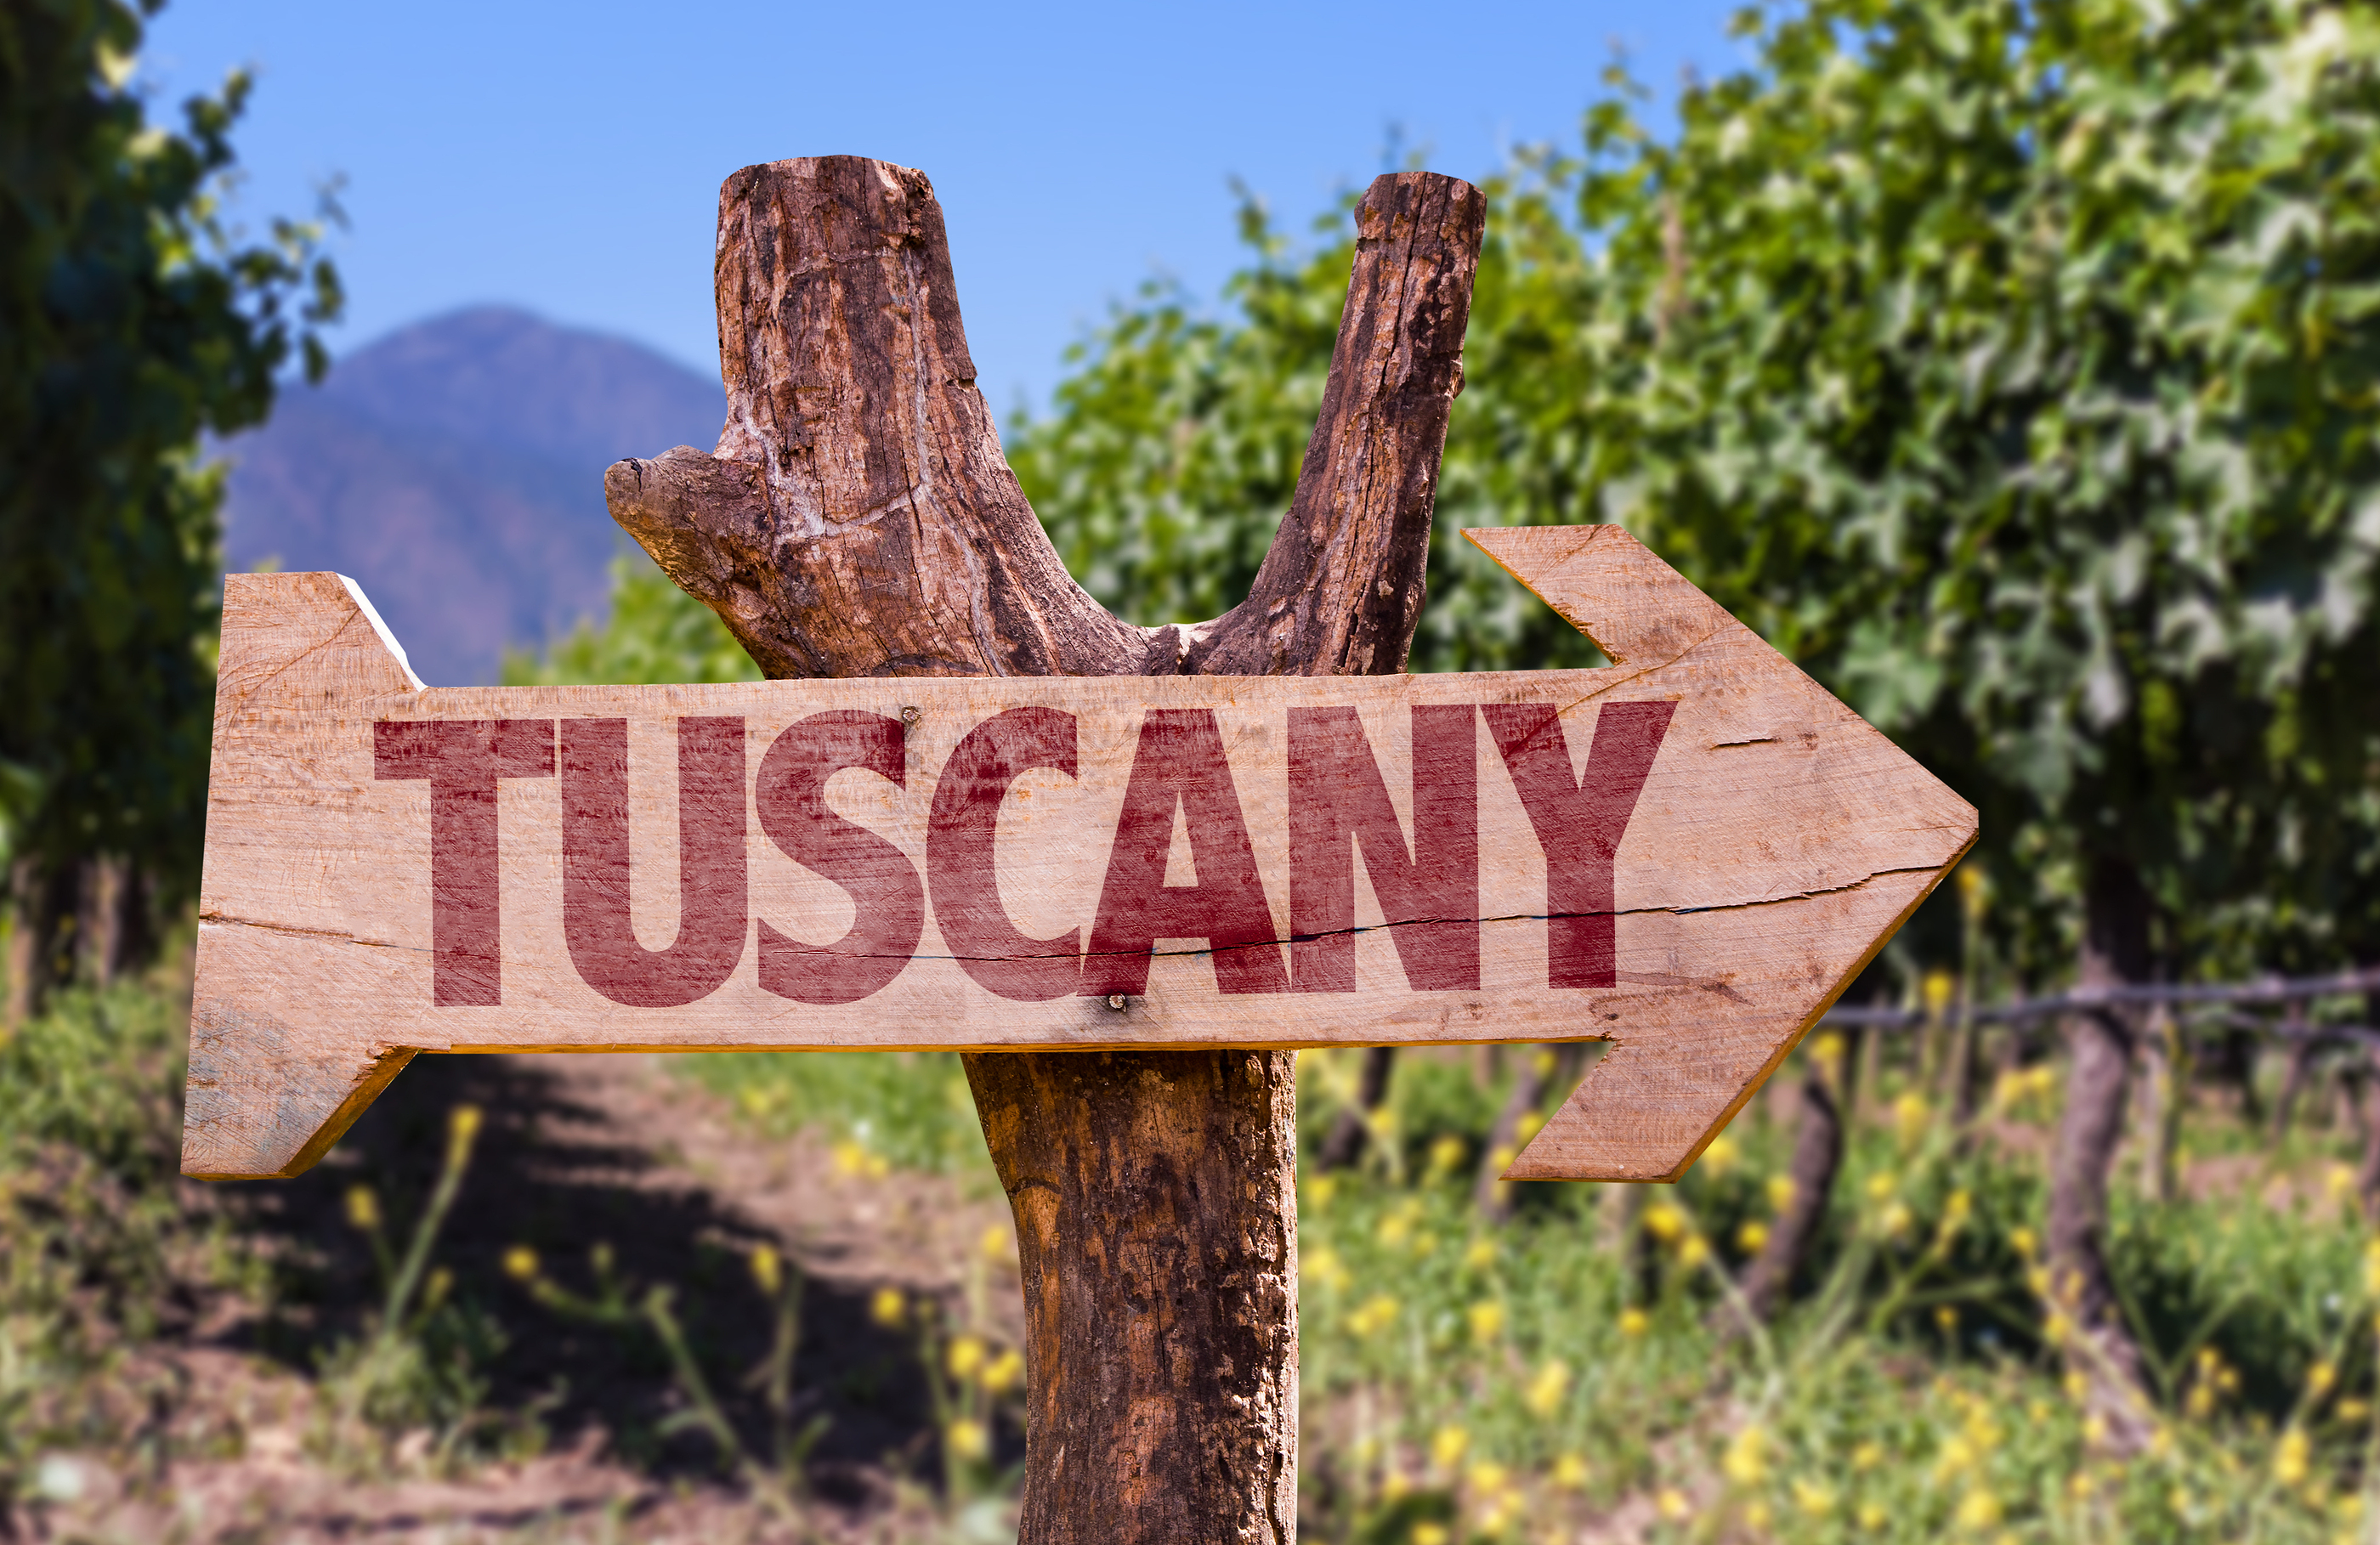 Tuscany wooden sign with winery background